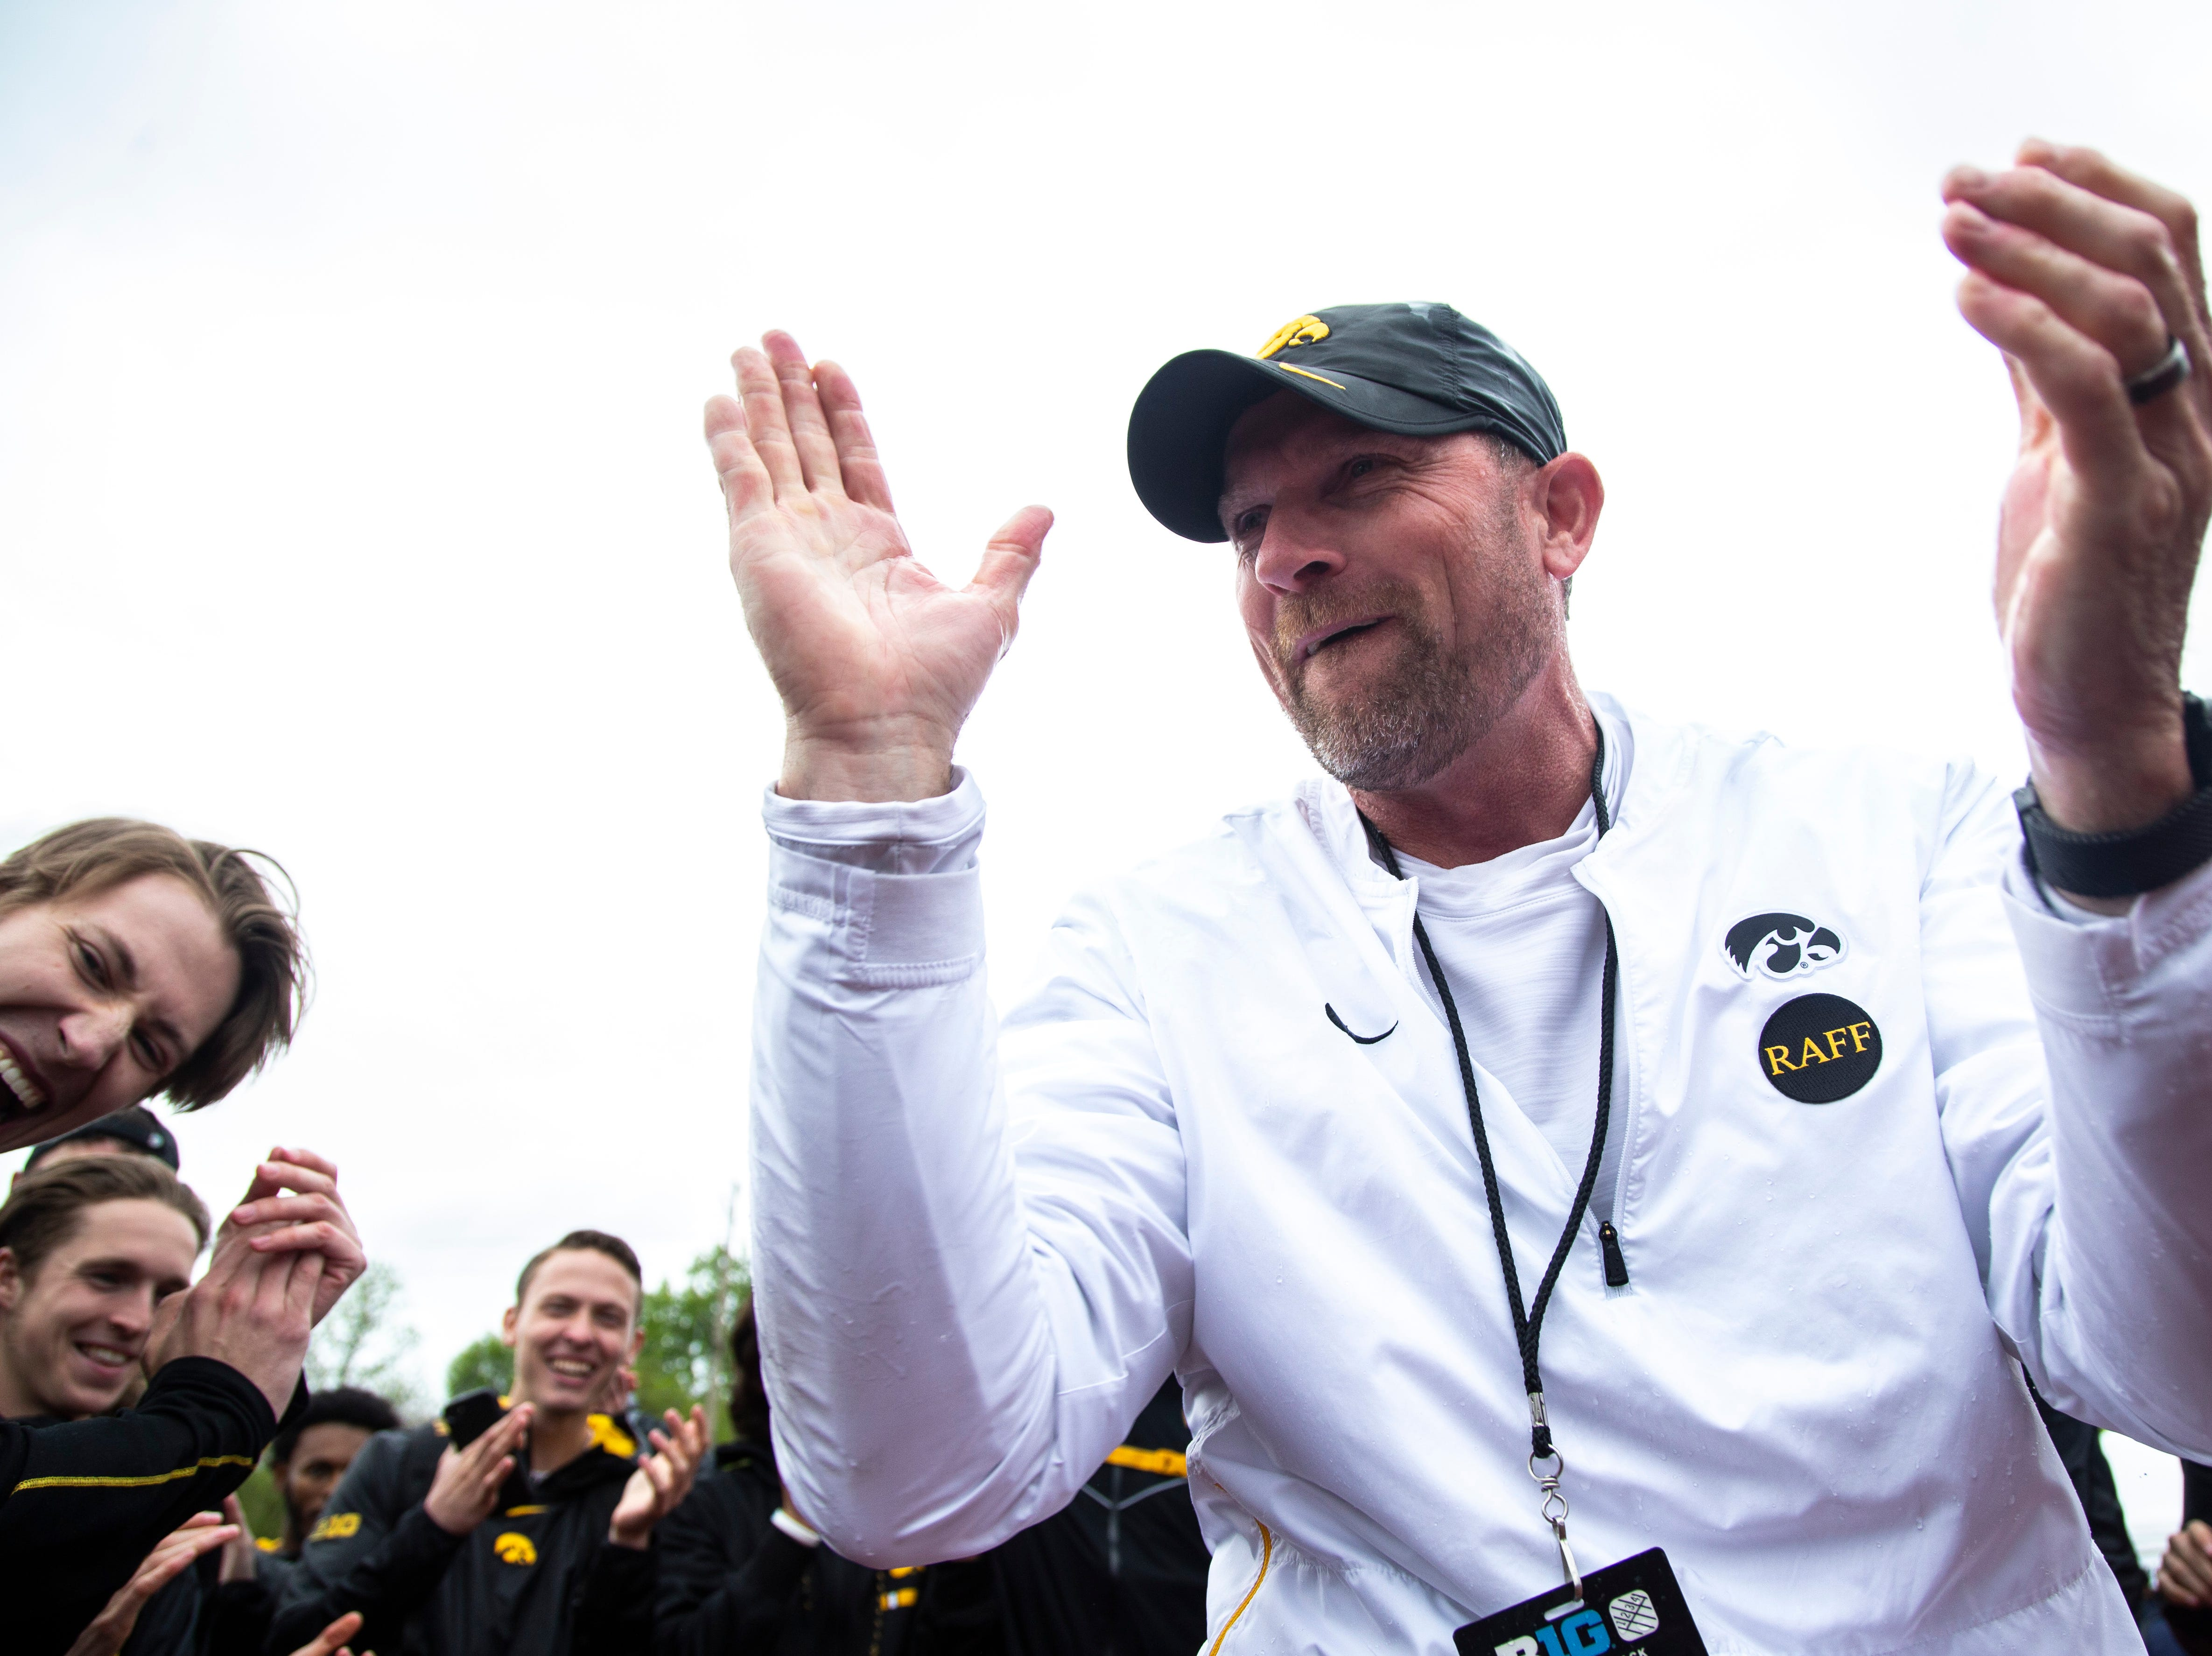 Joey Woody, the University of Iowa director of track and field, celebrates with players during the final day of Big Ten track and field outdoor championships, Sunday, May 12, 2019, at Francis X. Cretzmeyer Track on the University of Iowa campus in Iowa City, Iowa.